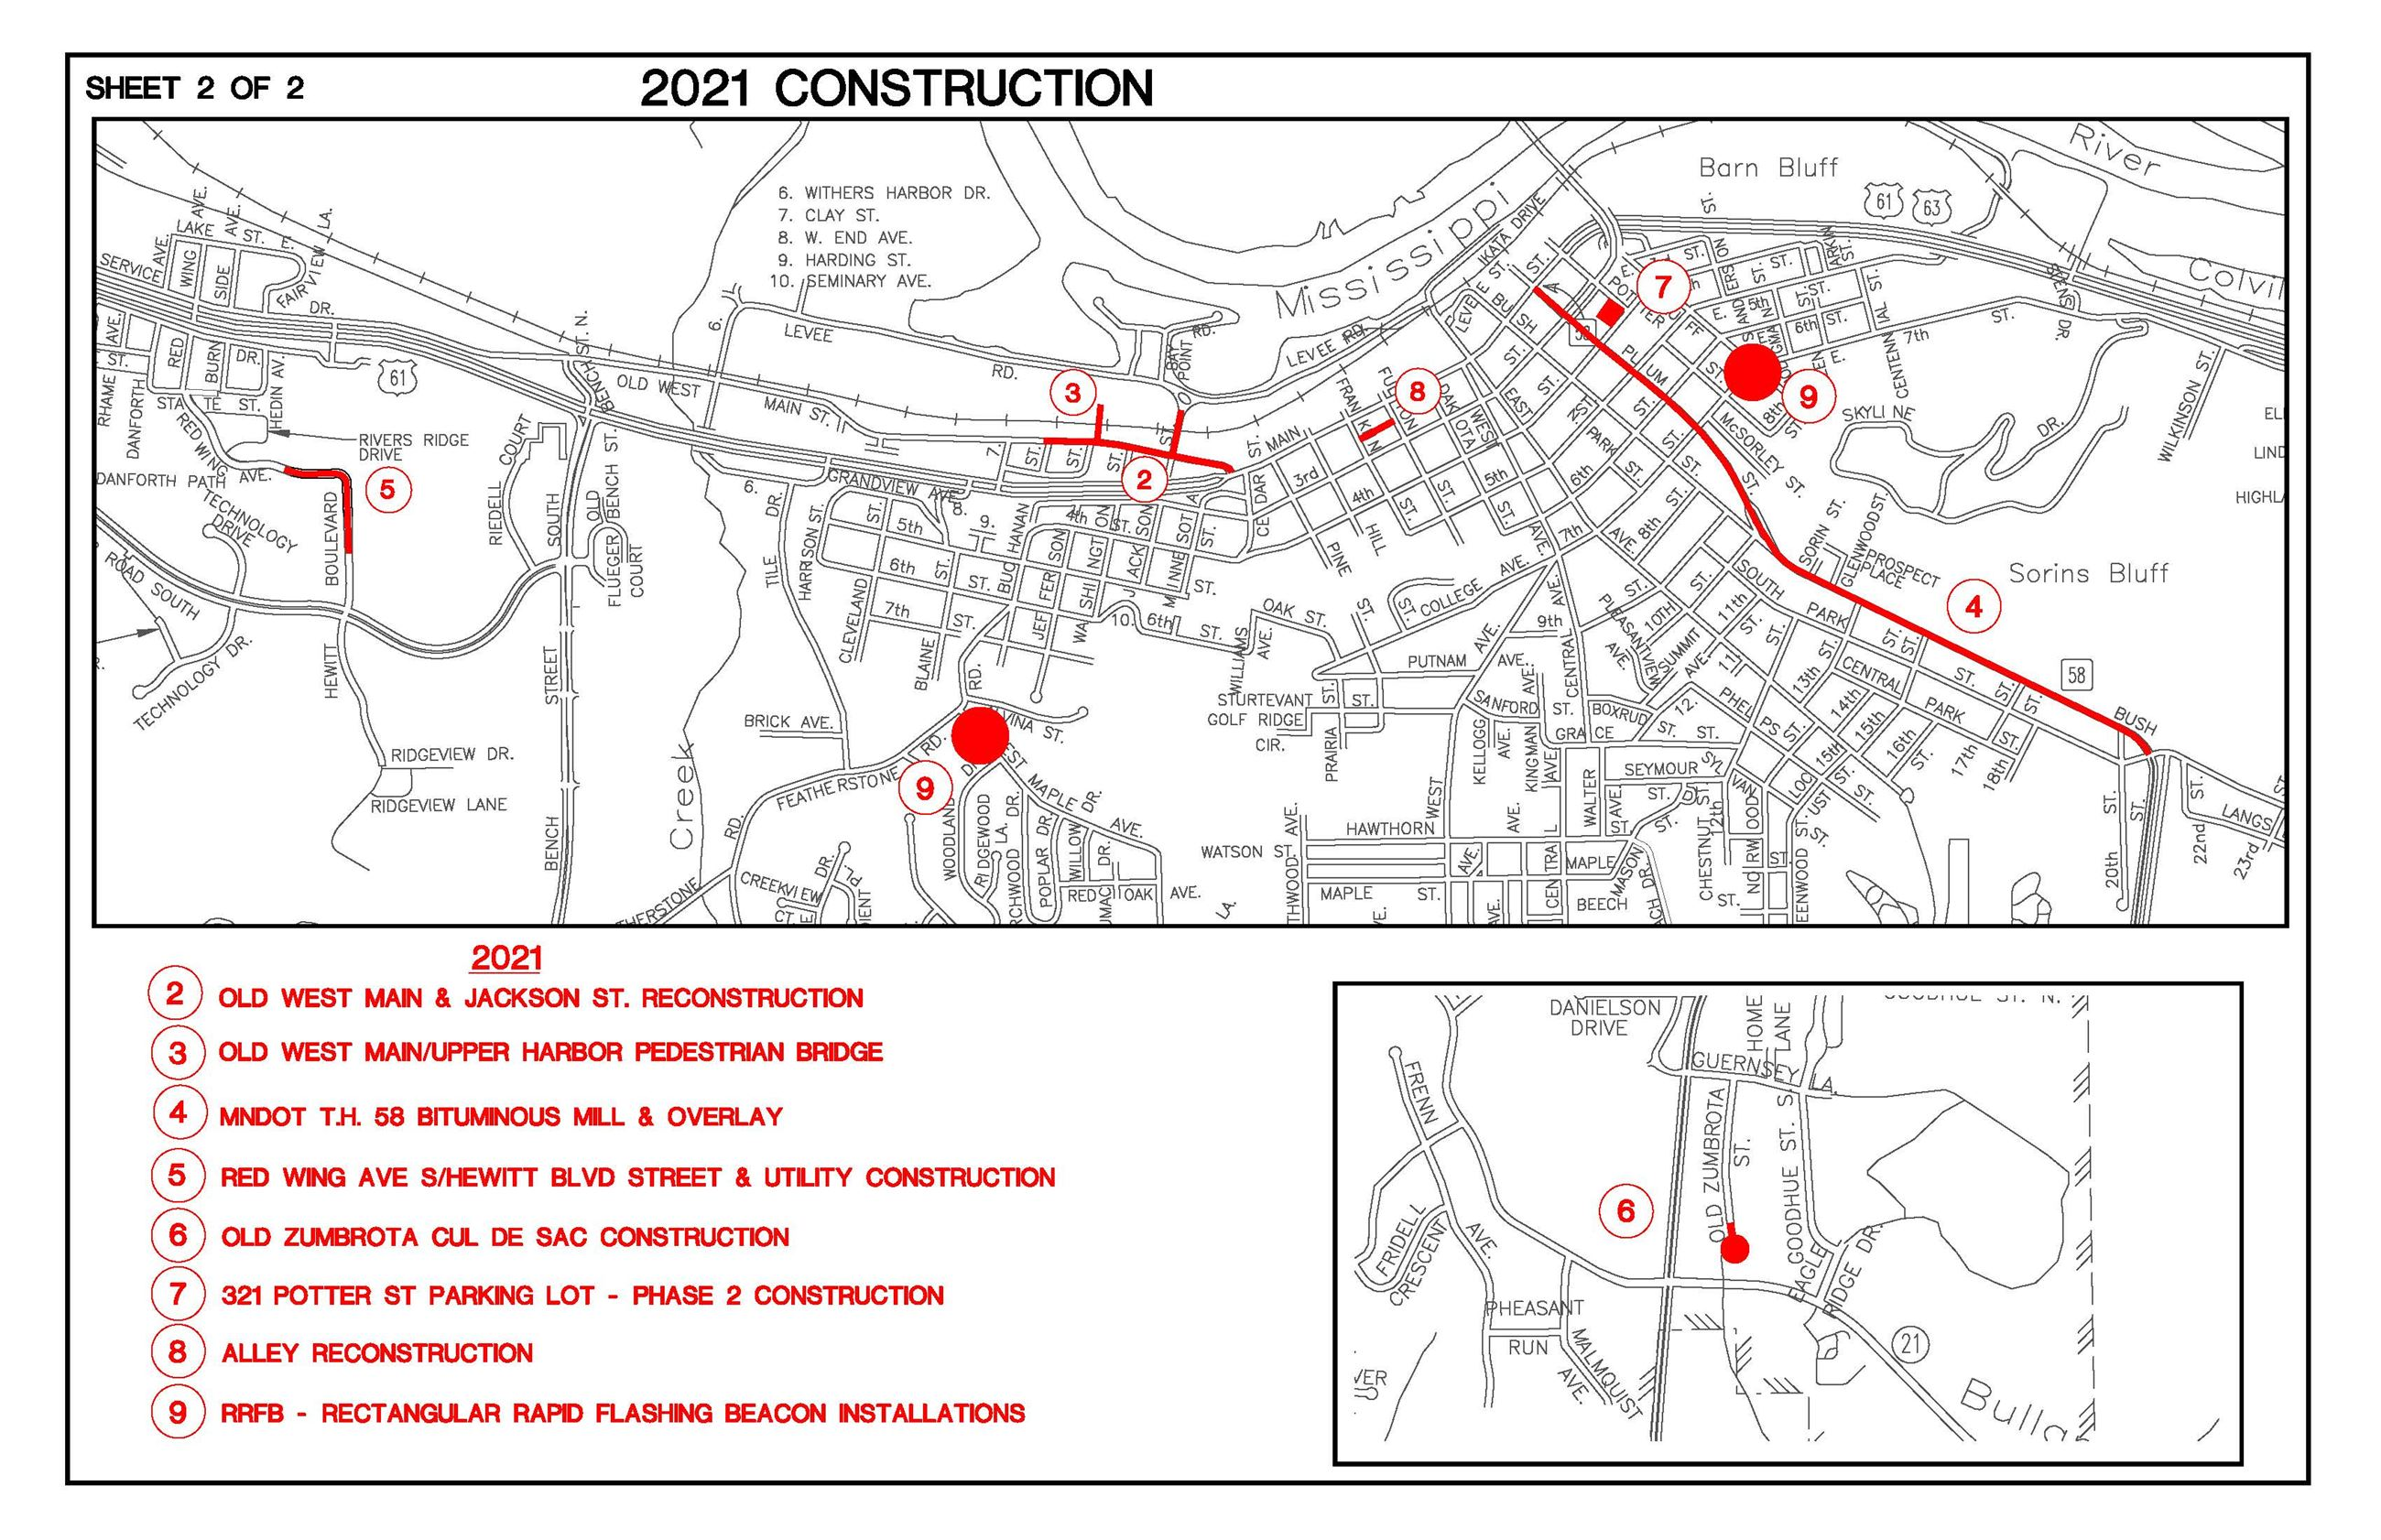 Overview map of upcoming 2021 construction projects in Red Wing.